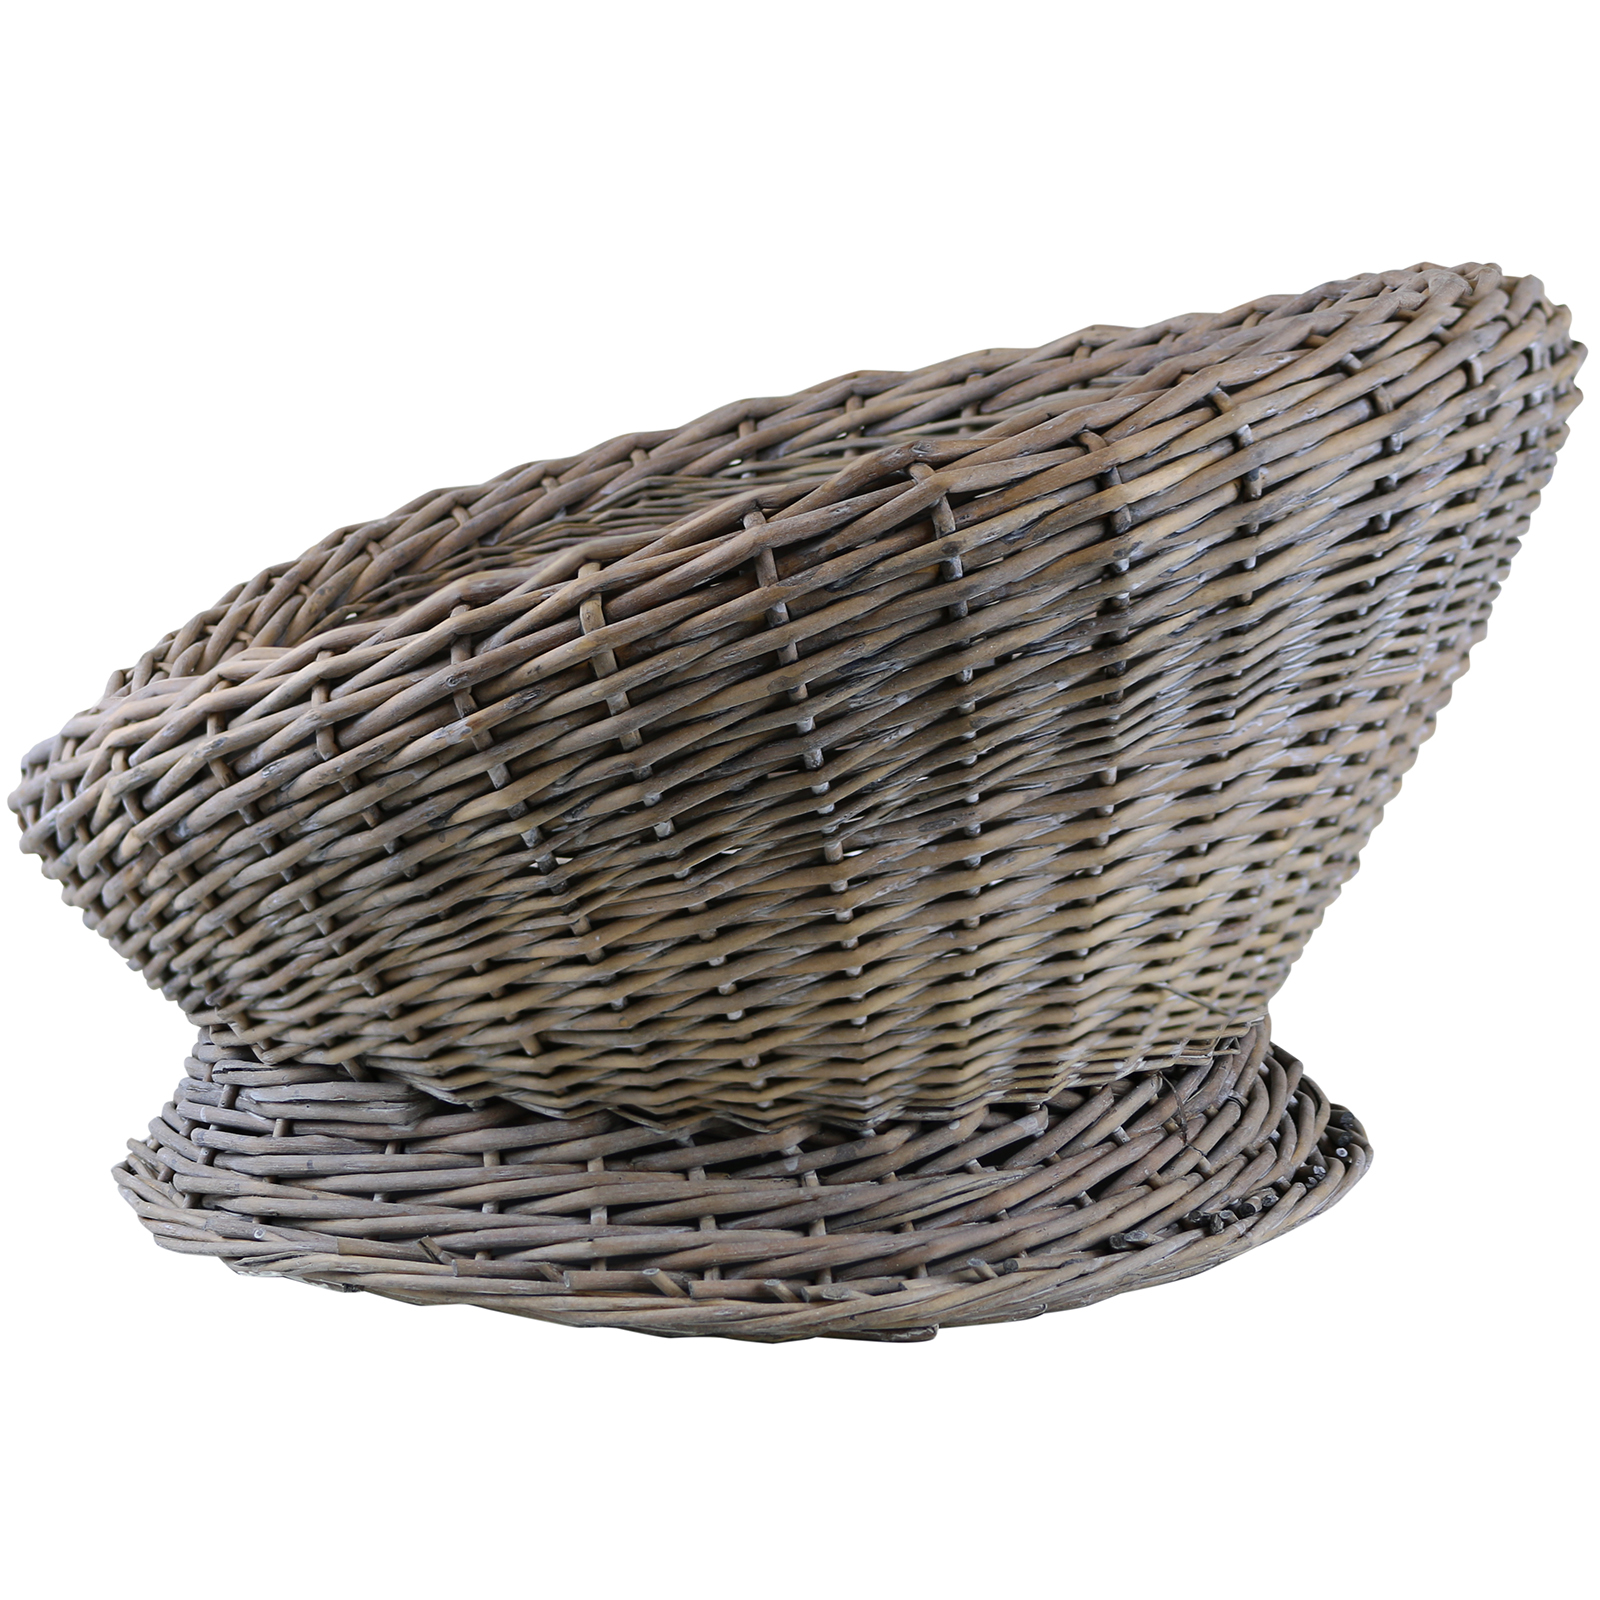 Grey Wicker Basket Uk : Me my woven wicker cat kitten round pet bed basket igloo